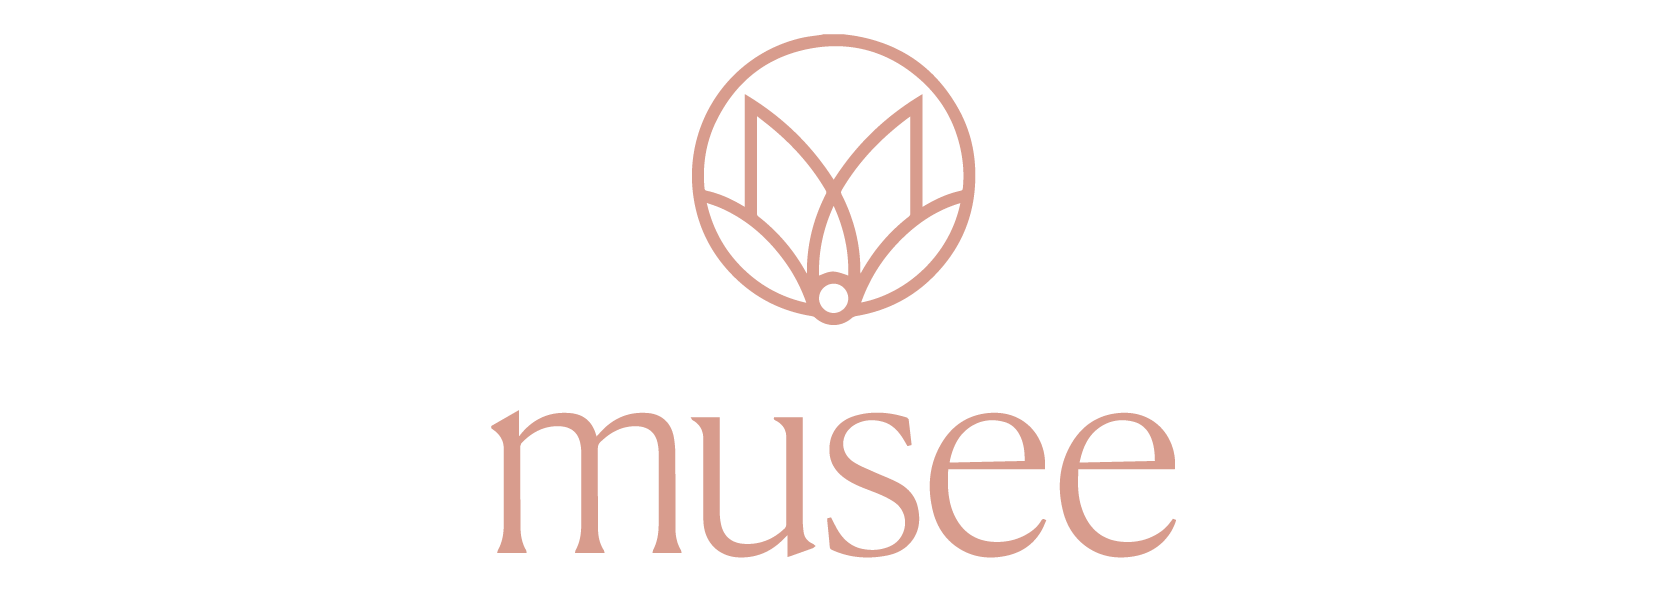 sponsors_musee.png